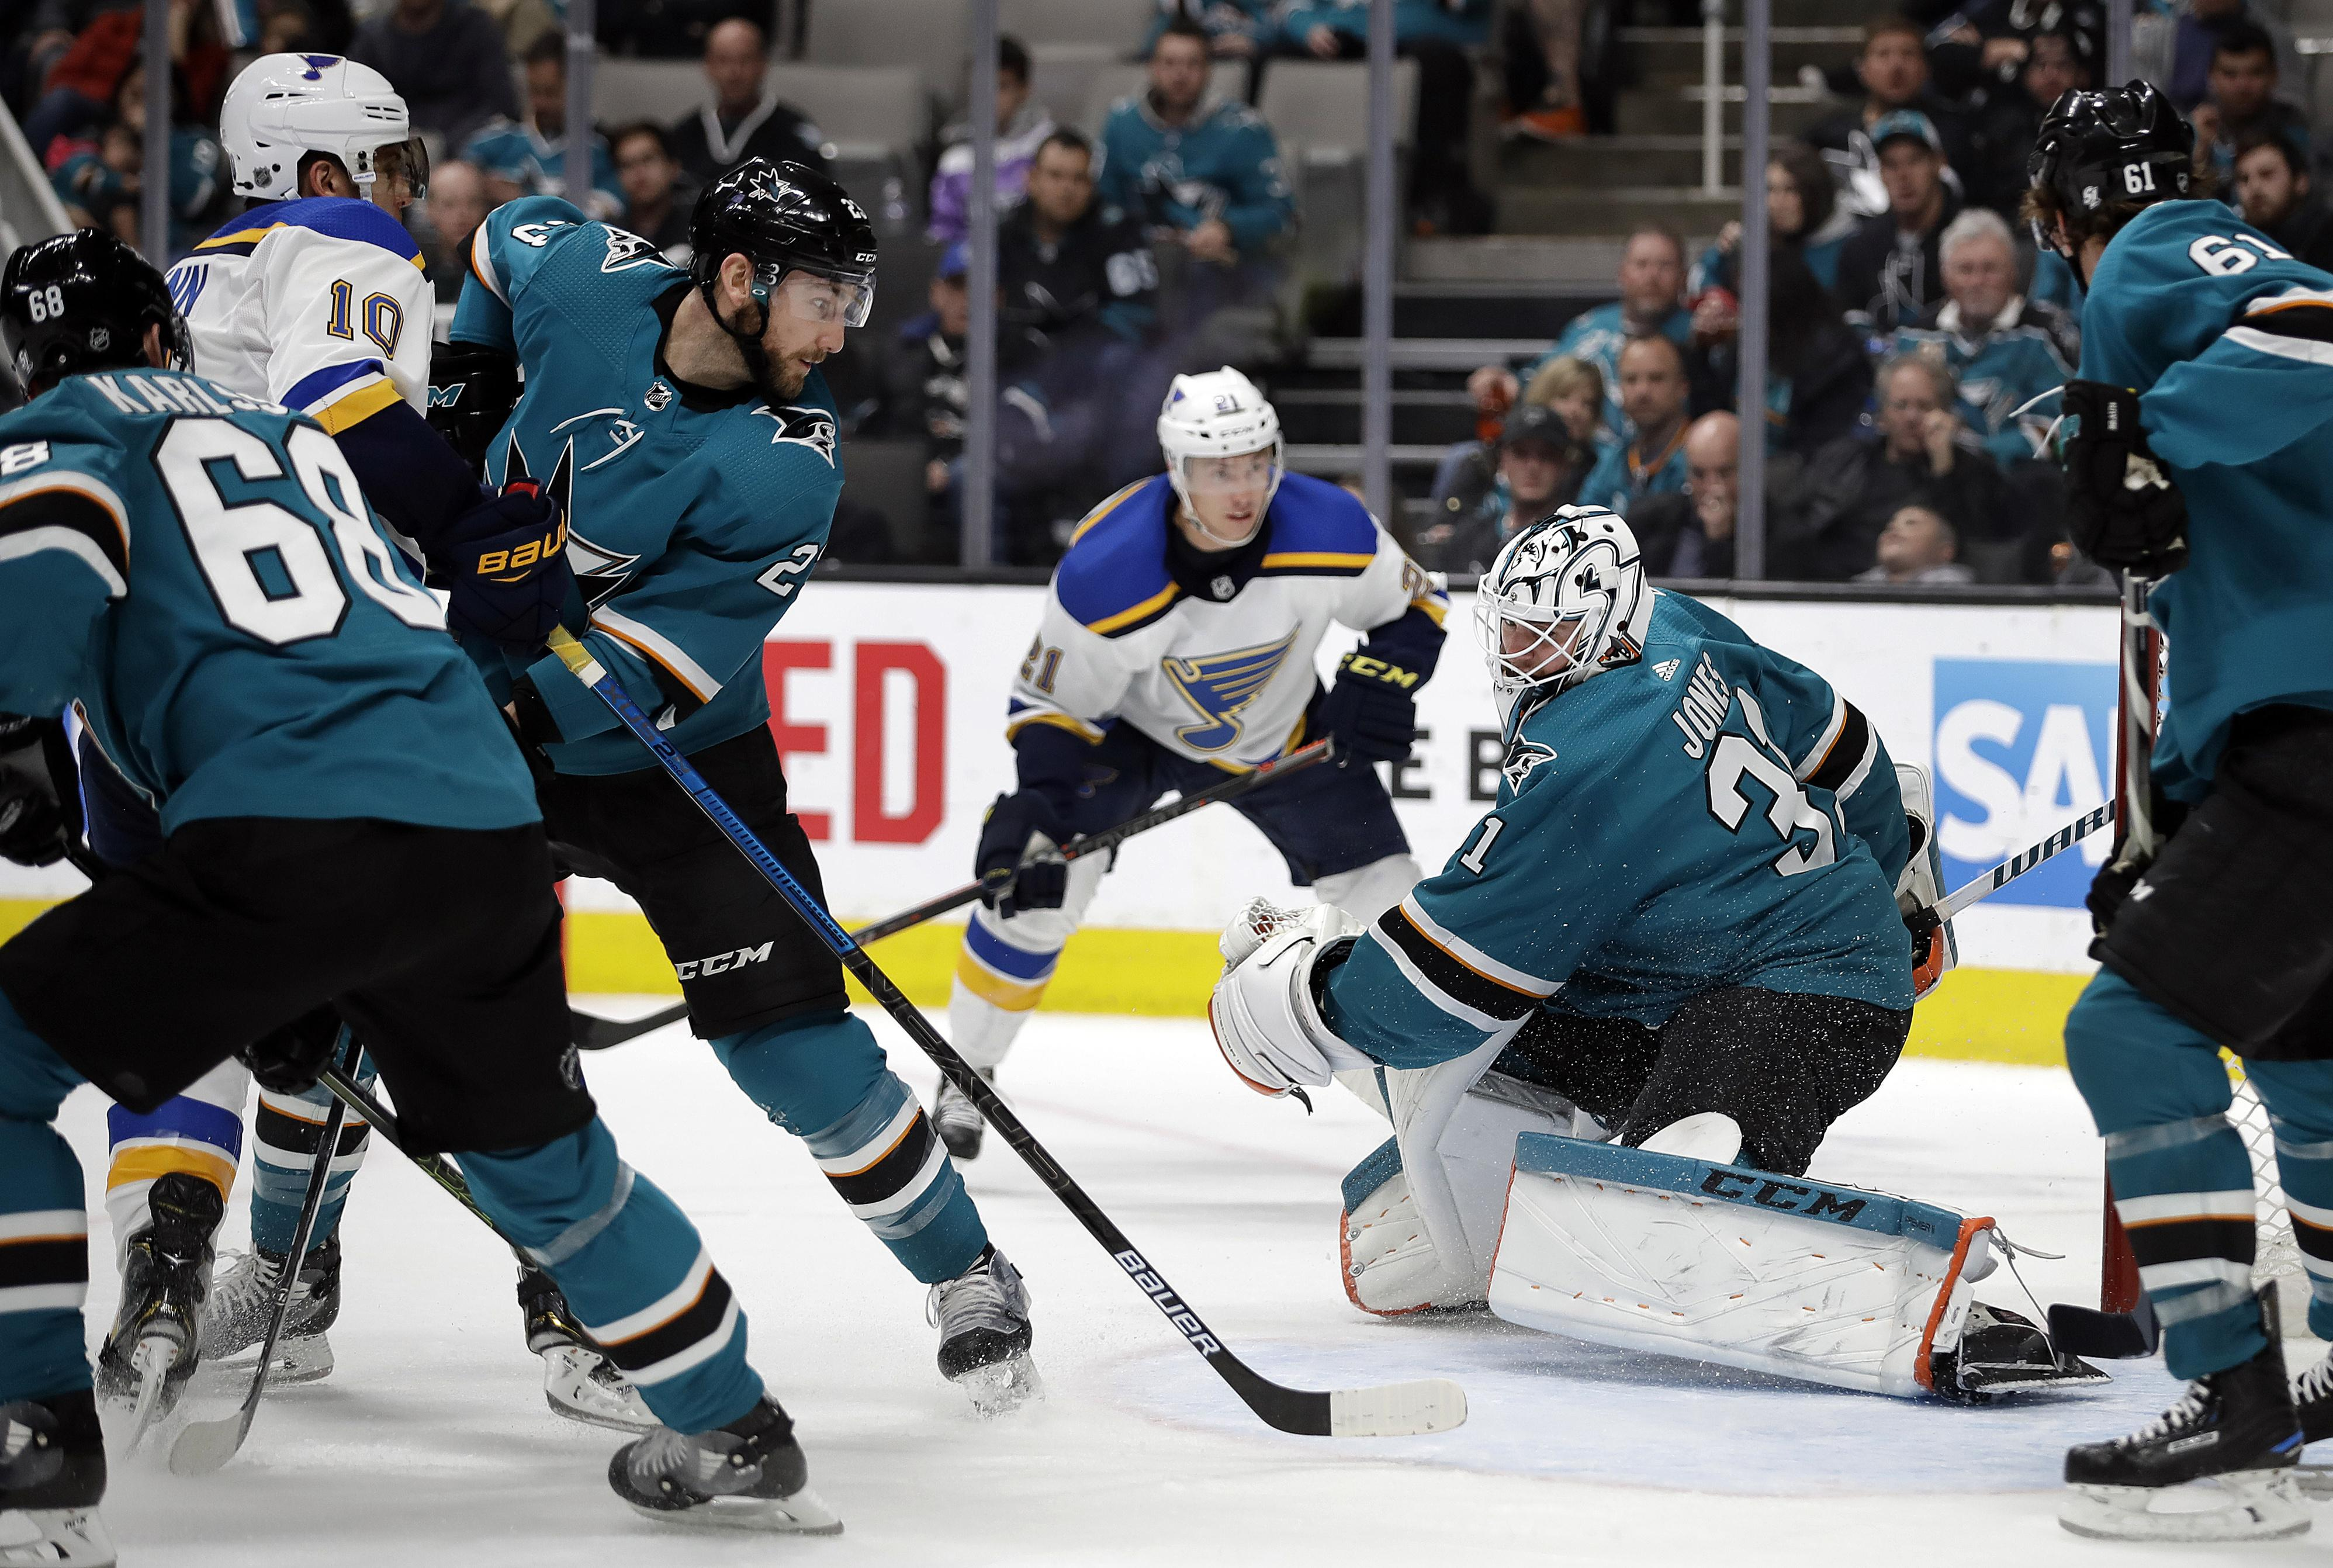 Nhl Roundup Sharks Beat Blues 3 2 In Ot To Take Western Conference